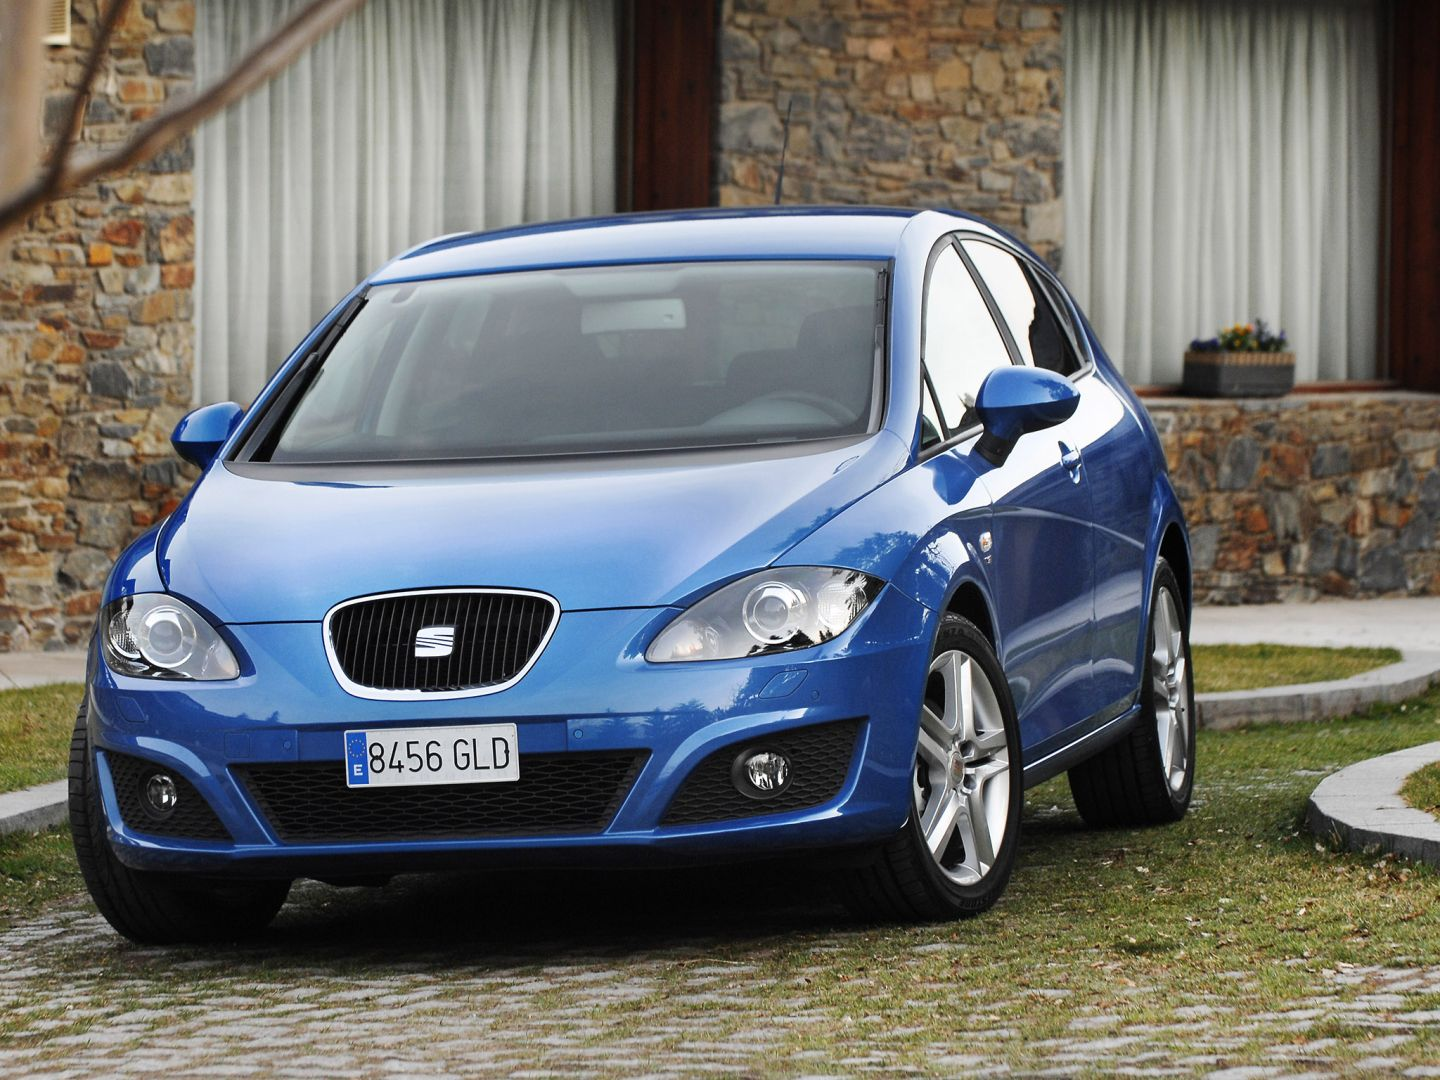 seat leon 2009 2010 2011 2012 autoevolution. Black Bedroom Furniture Sets. Home Design Ideas